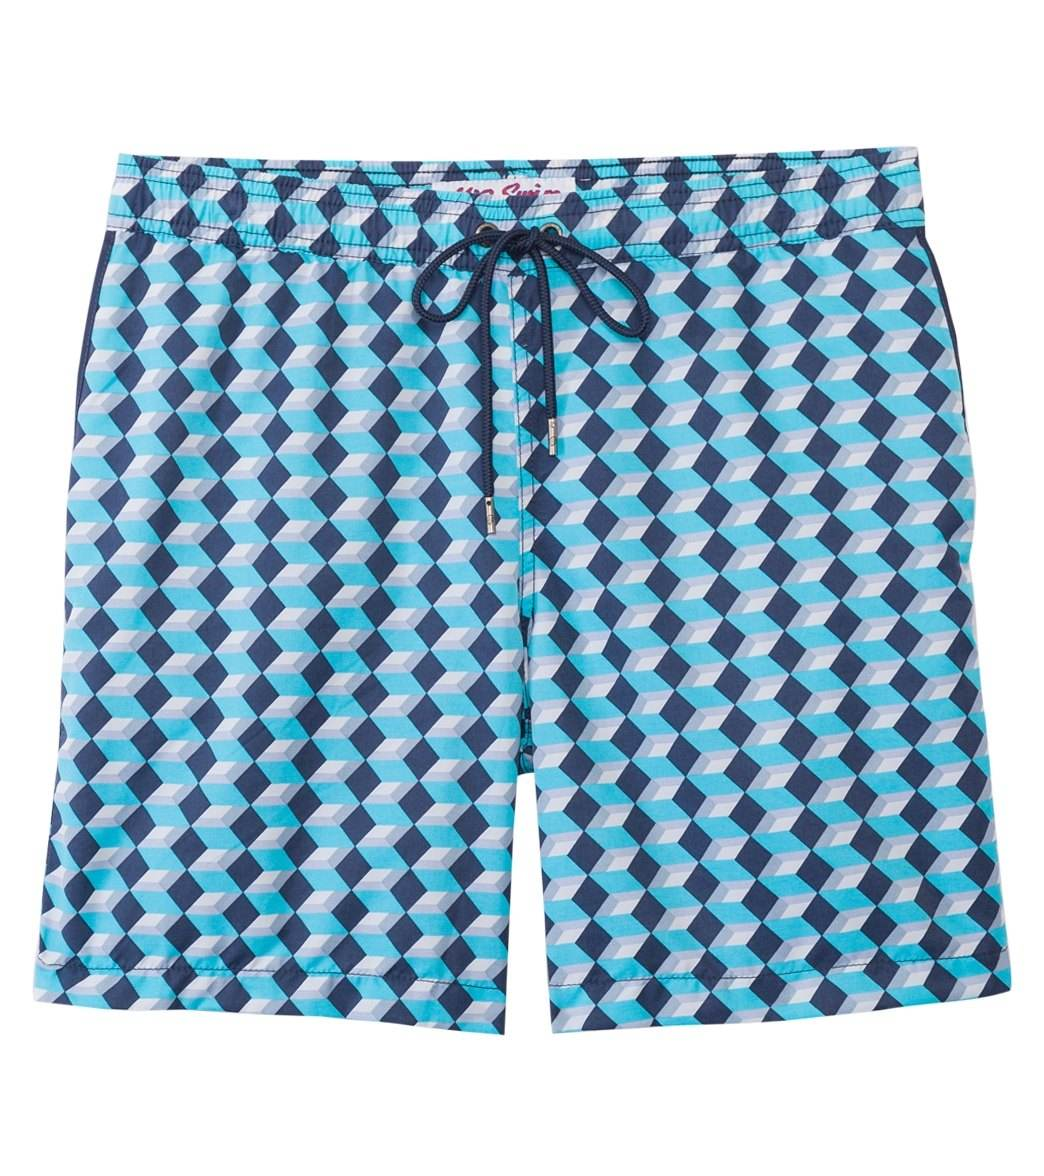 3137ec76c9 ... Mr.Swim Men's Dale Boxes Elastic Swim Trunk. Share